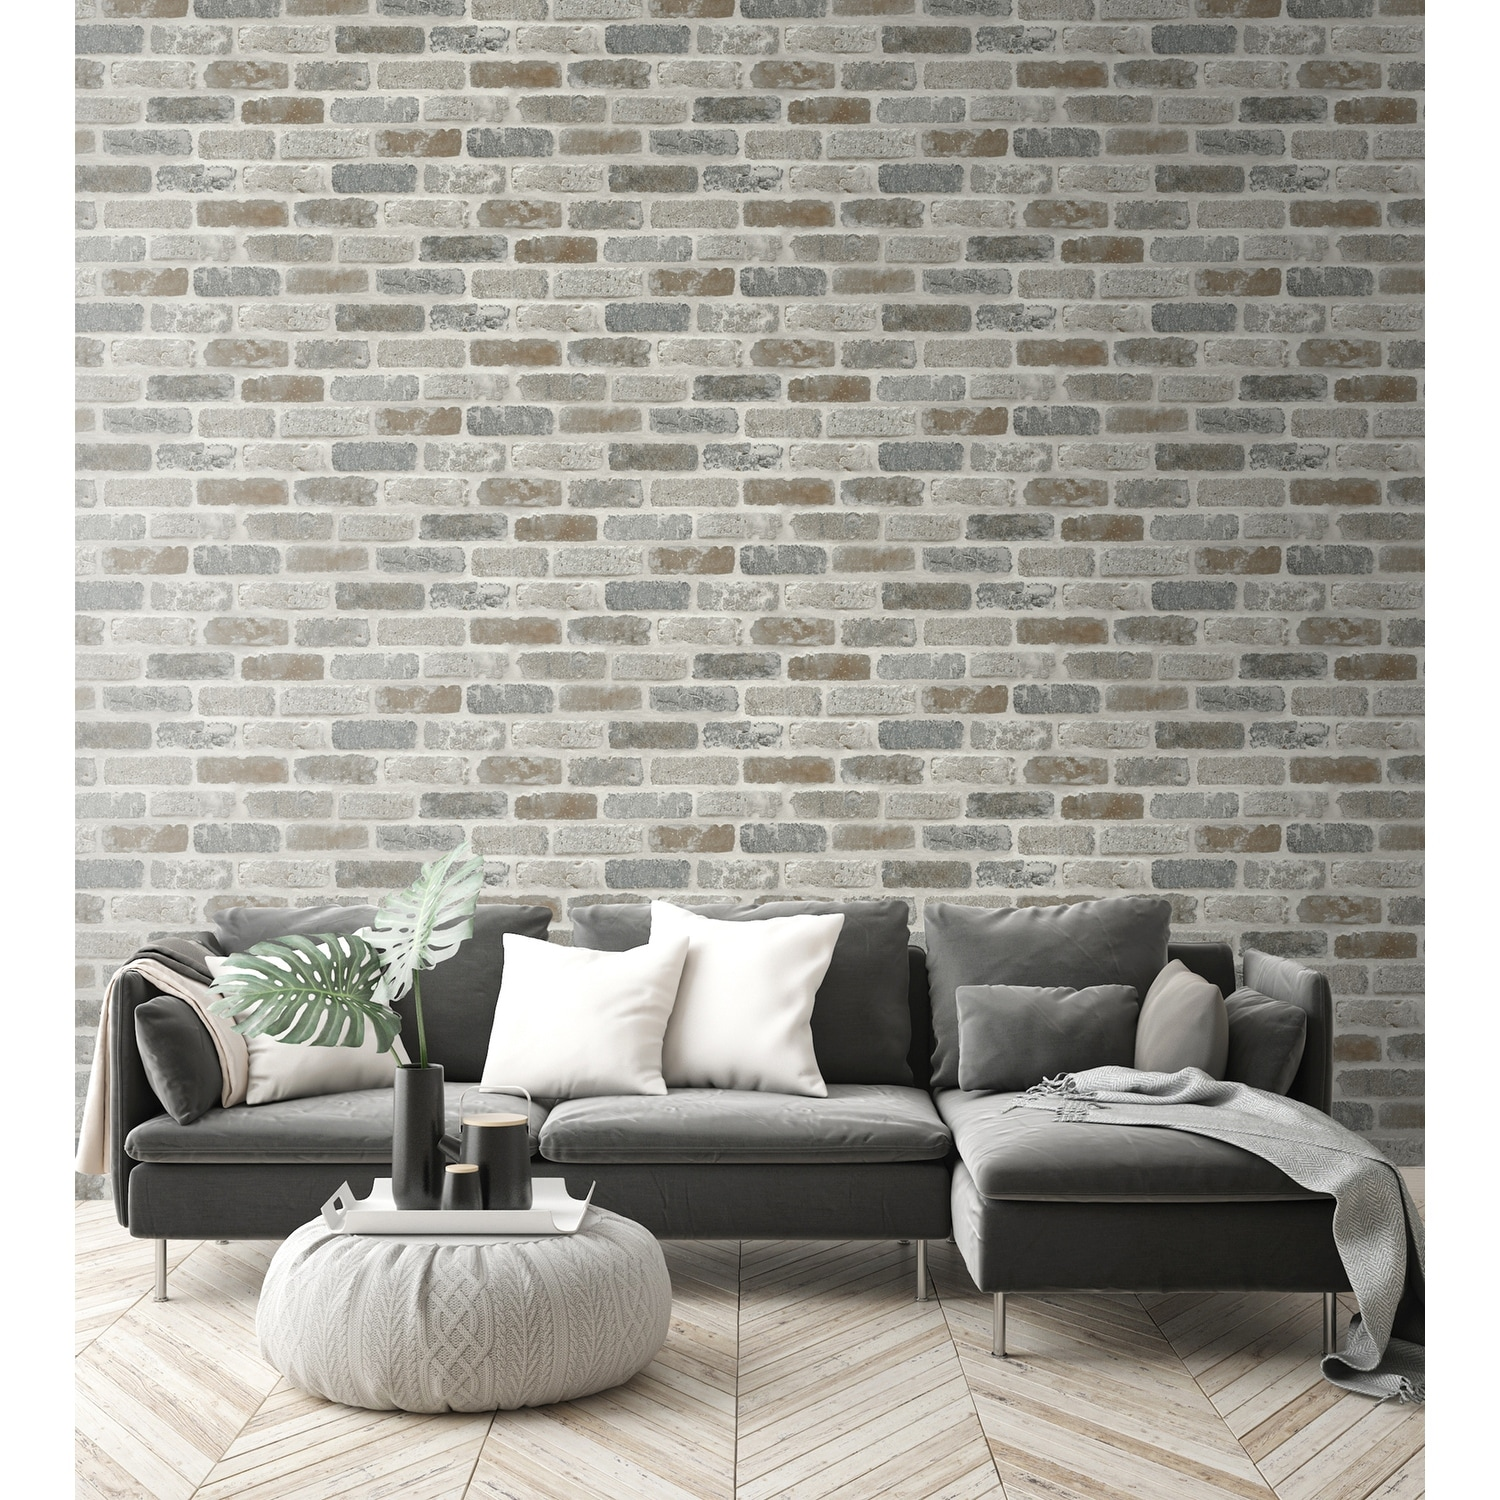 Shop Nextwall Washed Brick Peel And Stick Removable Wallpaper 20 5 In W X 18 Ft L Overstock 31053558